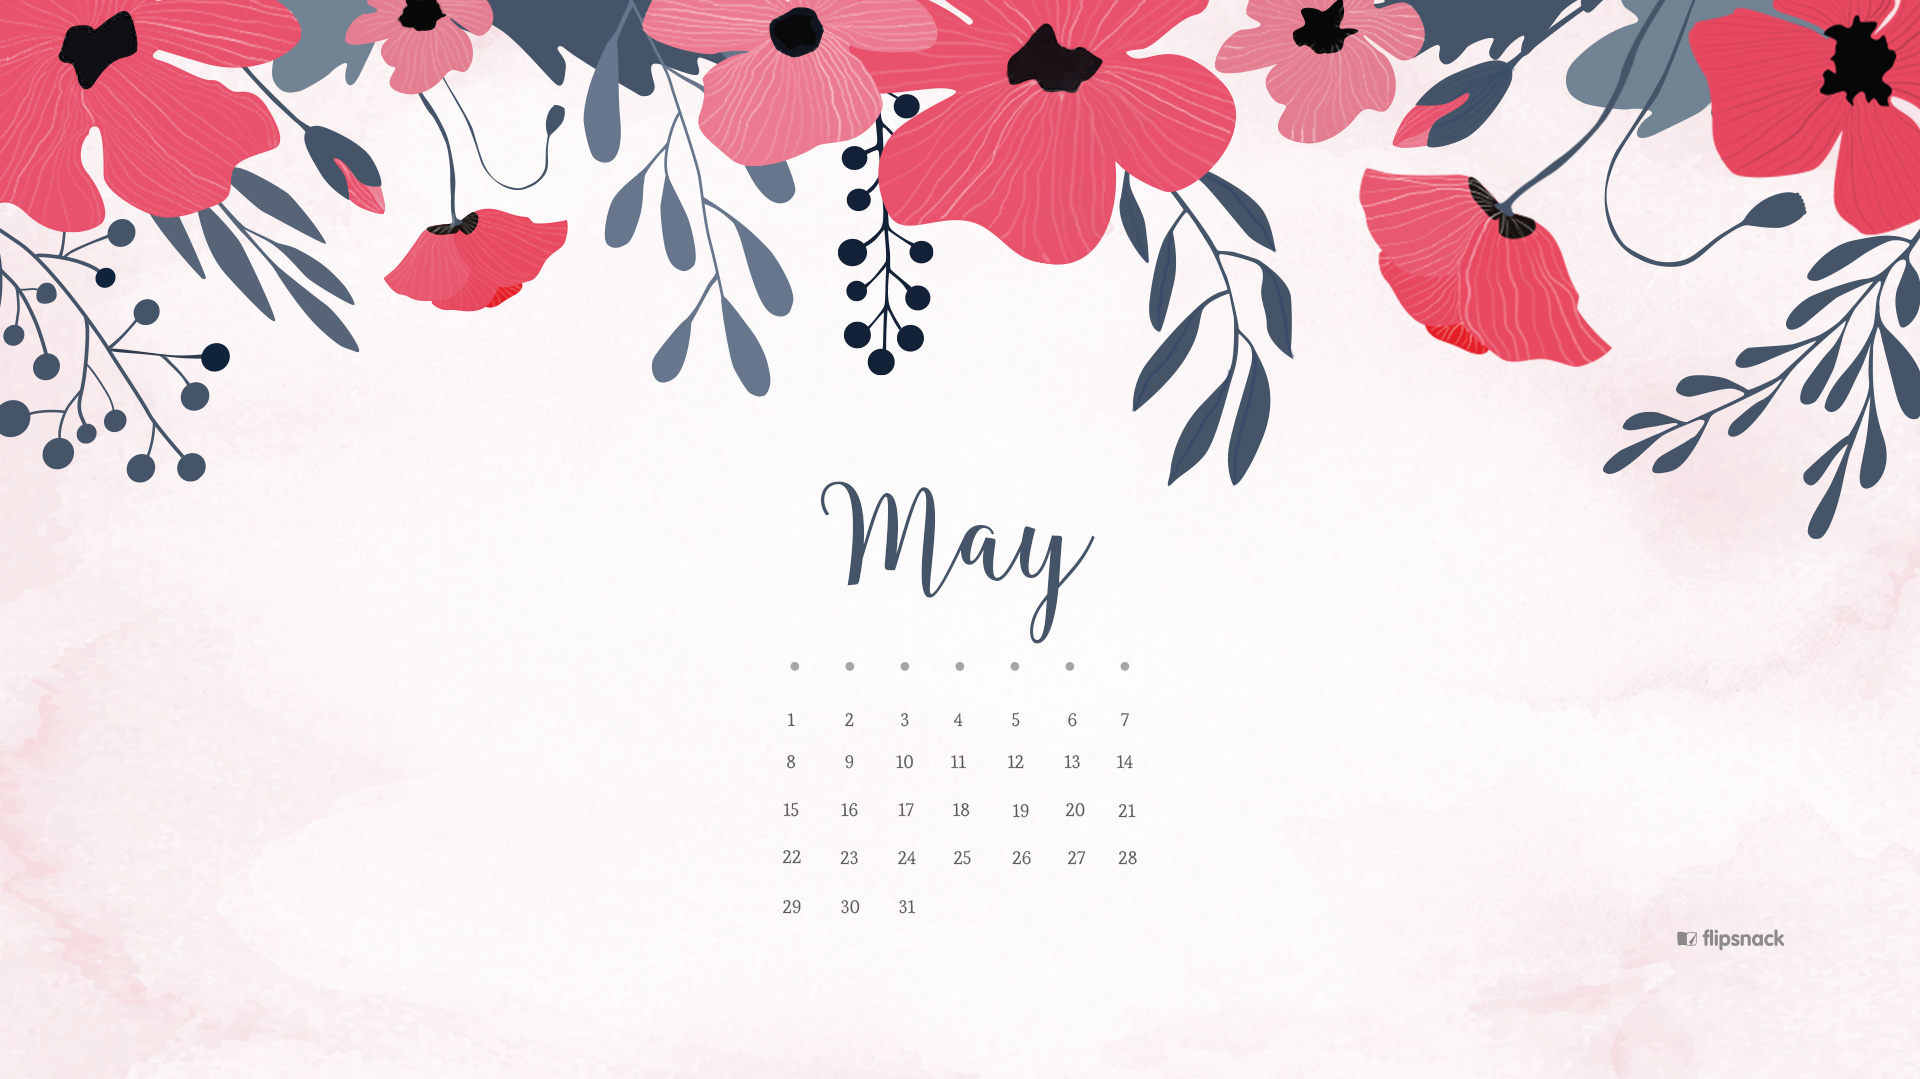 Calendar Background 2016 : May free calendar wallpaper desktop background